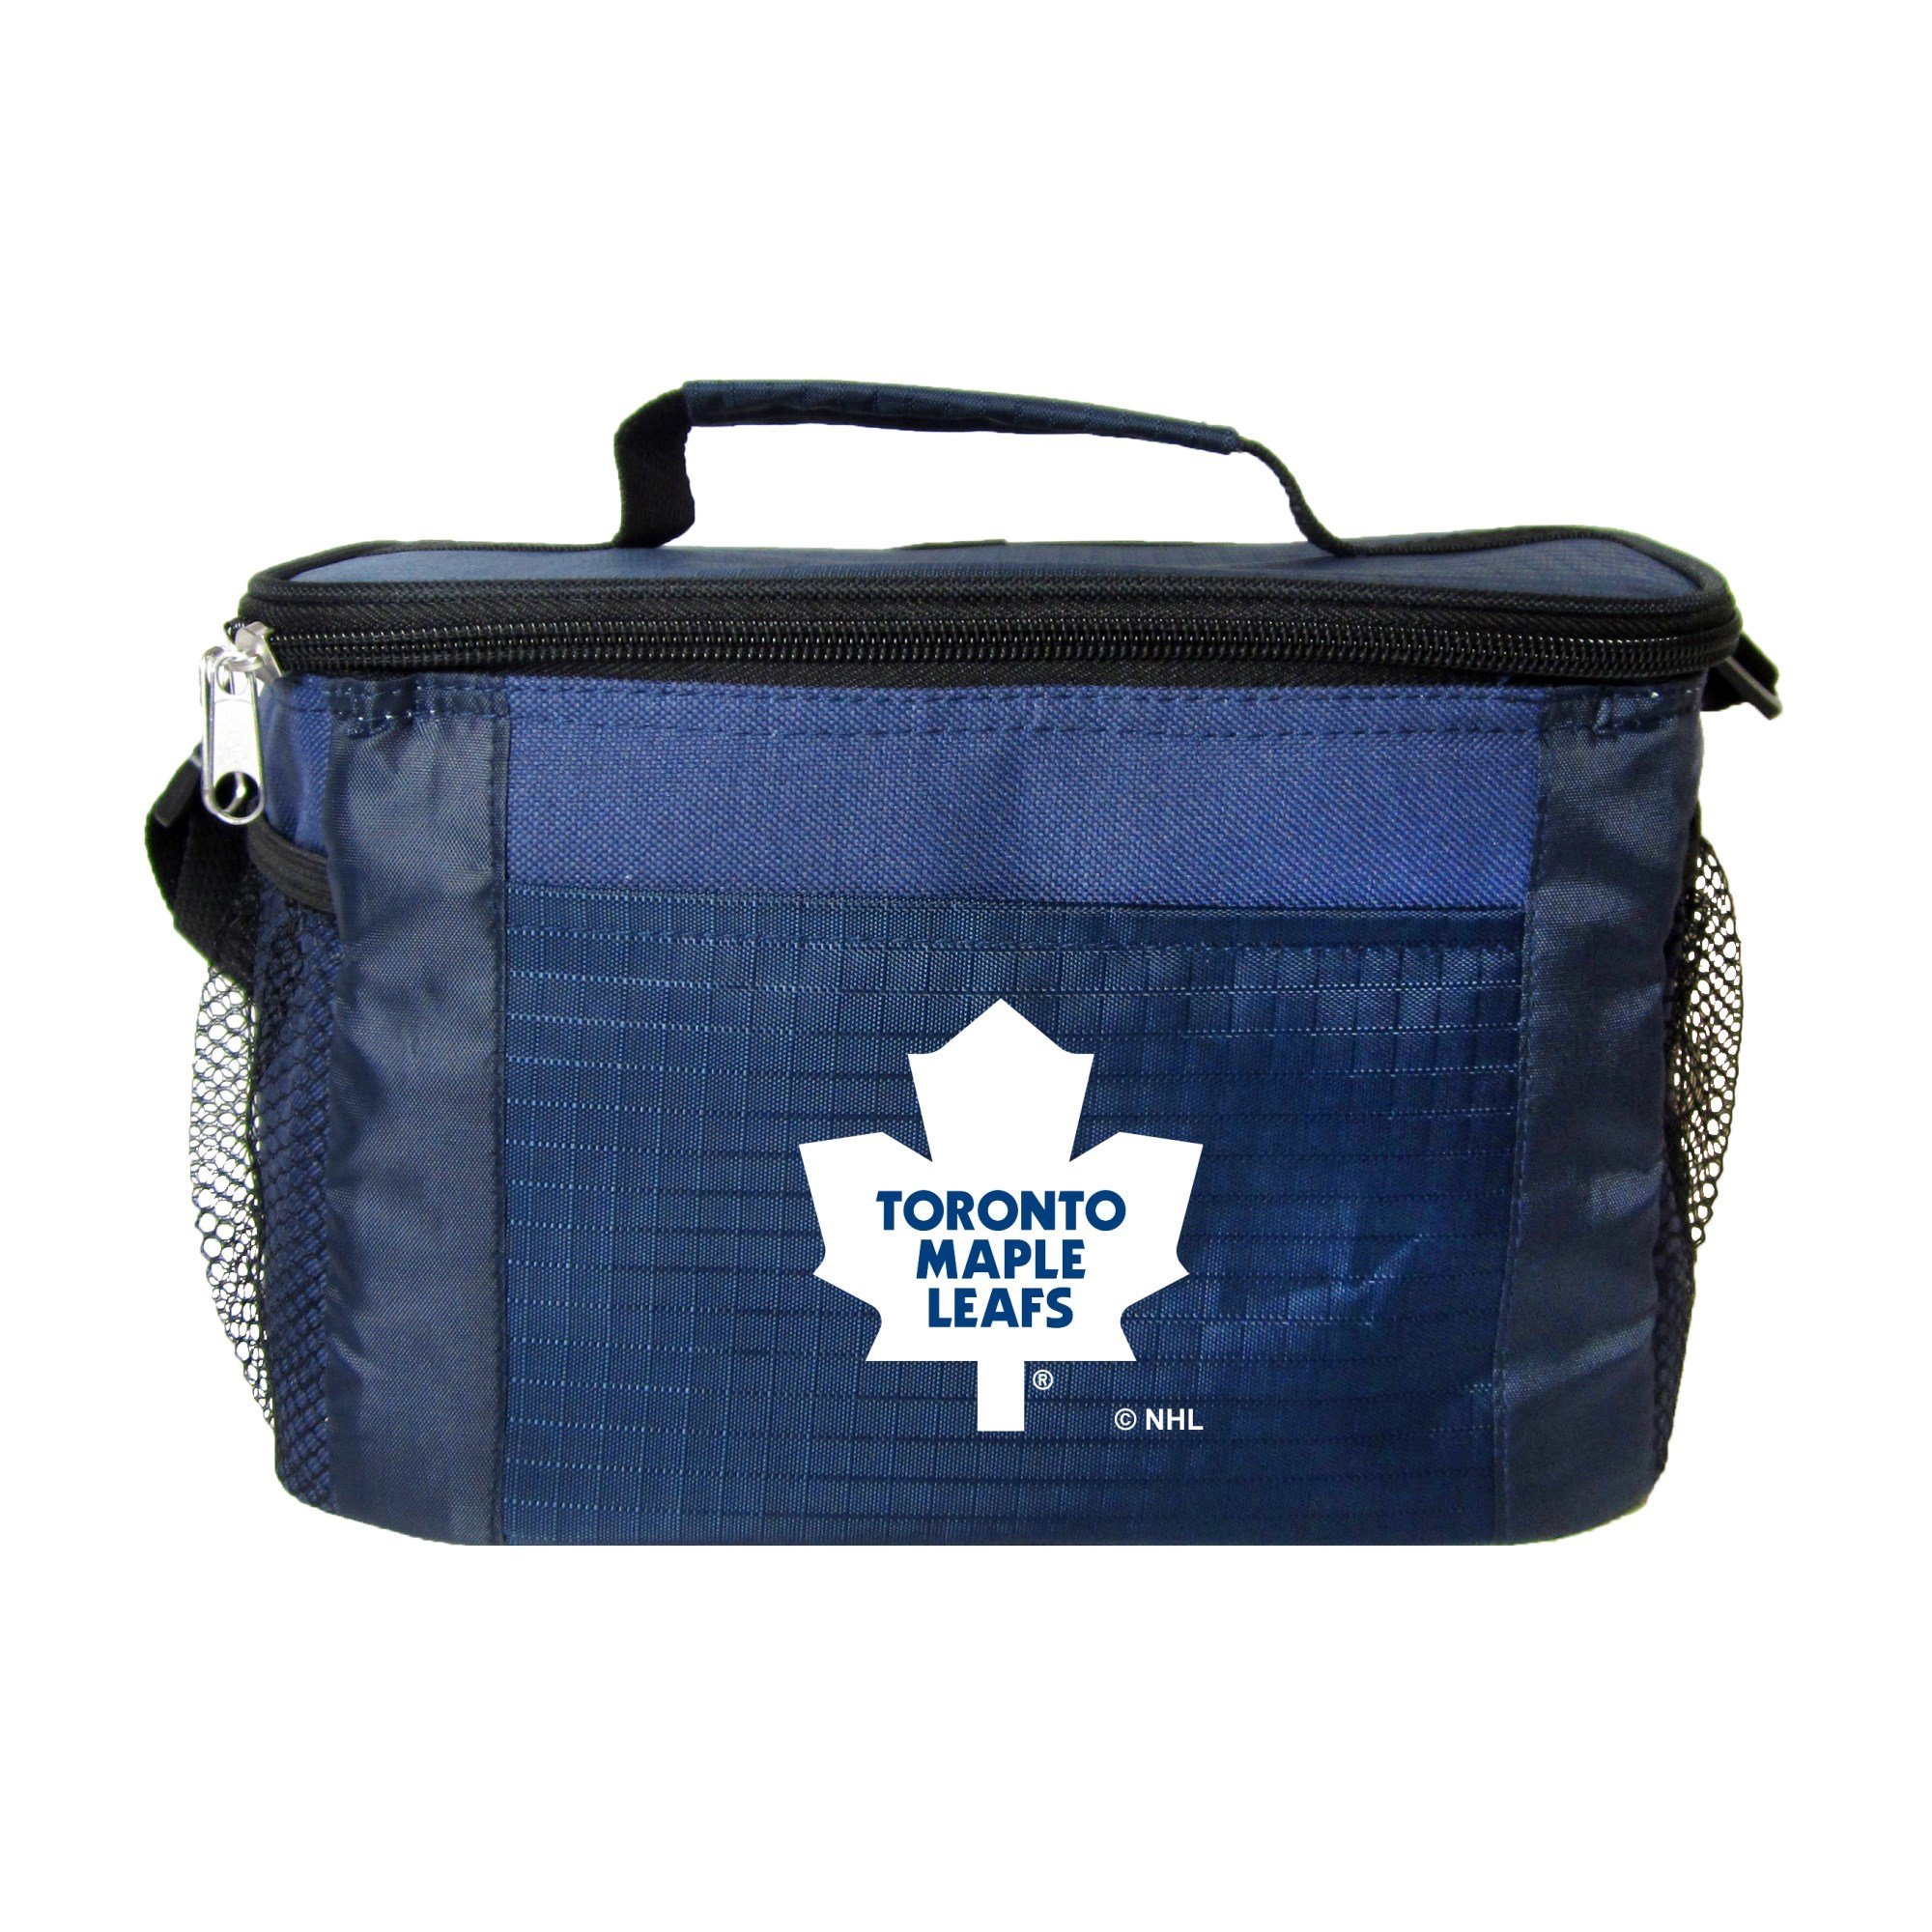 NHL Toronto Maple Leafs Insulated Lunch Cooler Bag with Zipper Closure, Navy